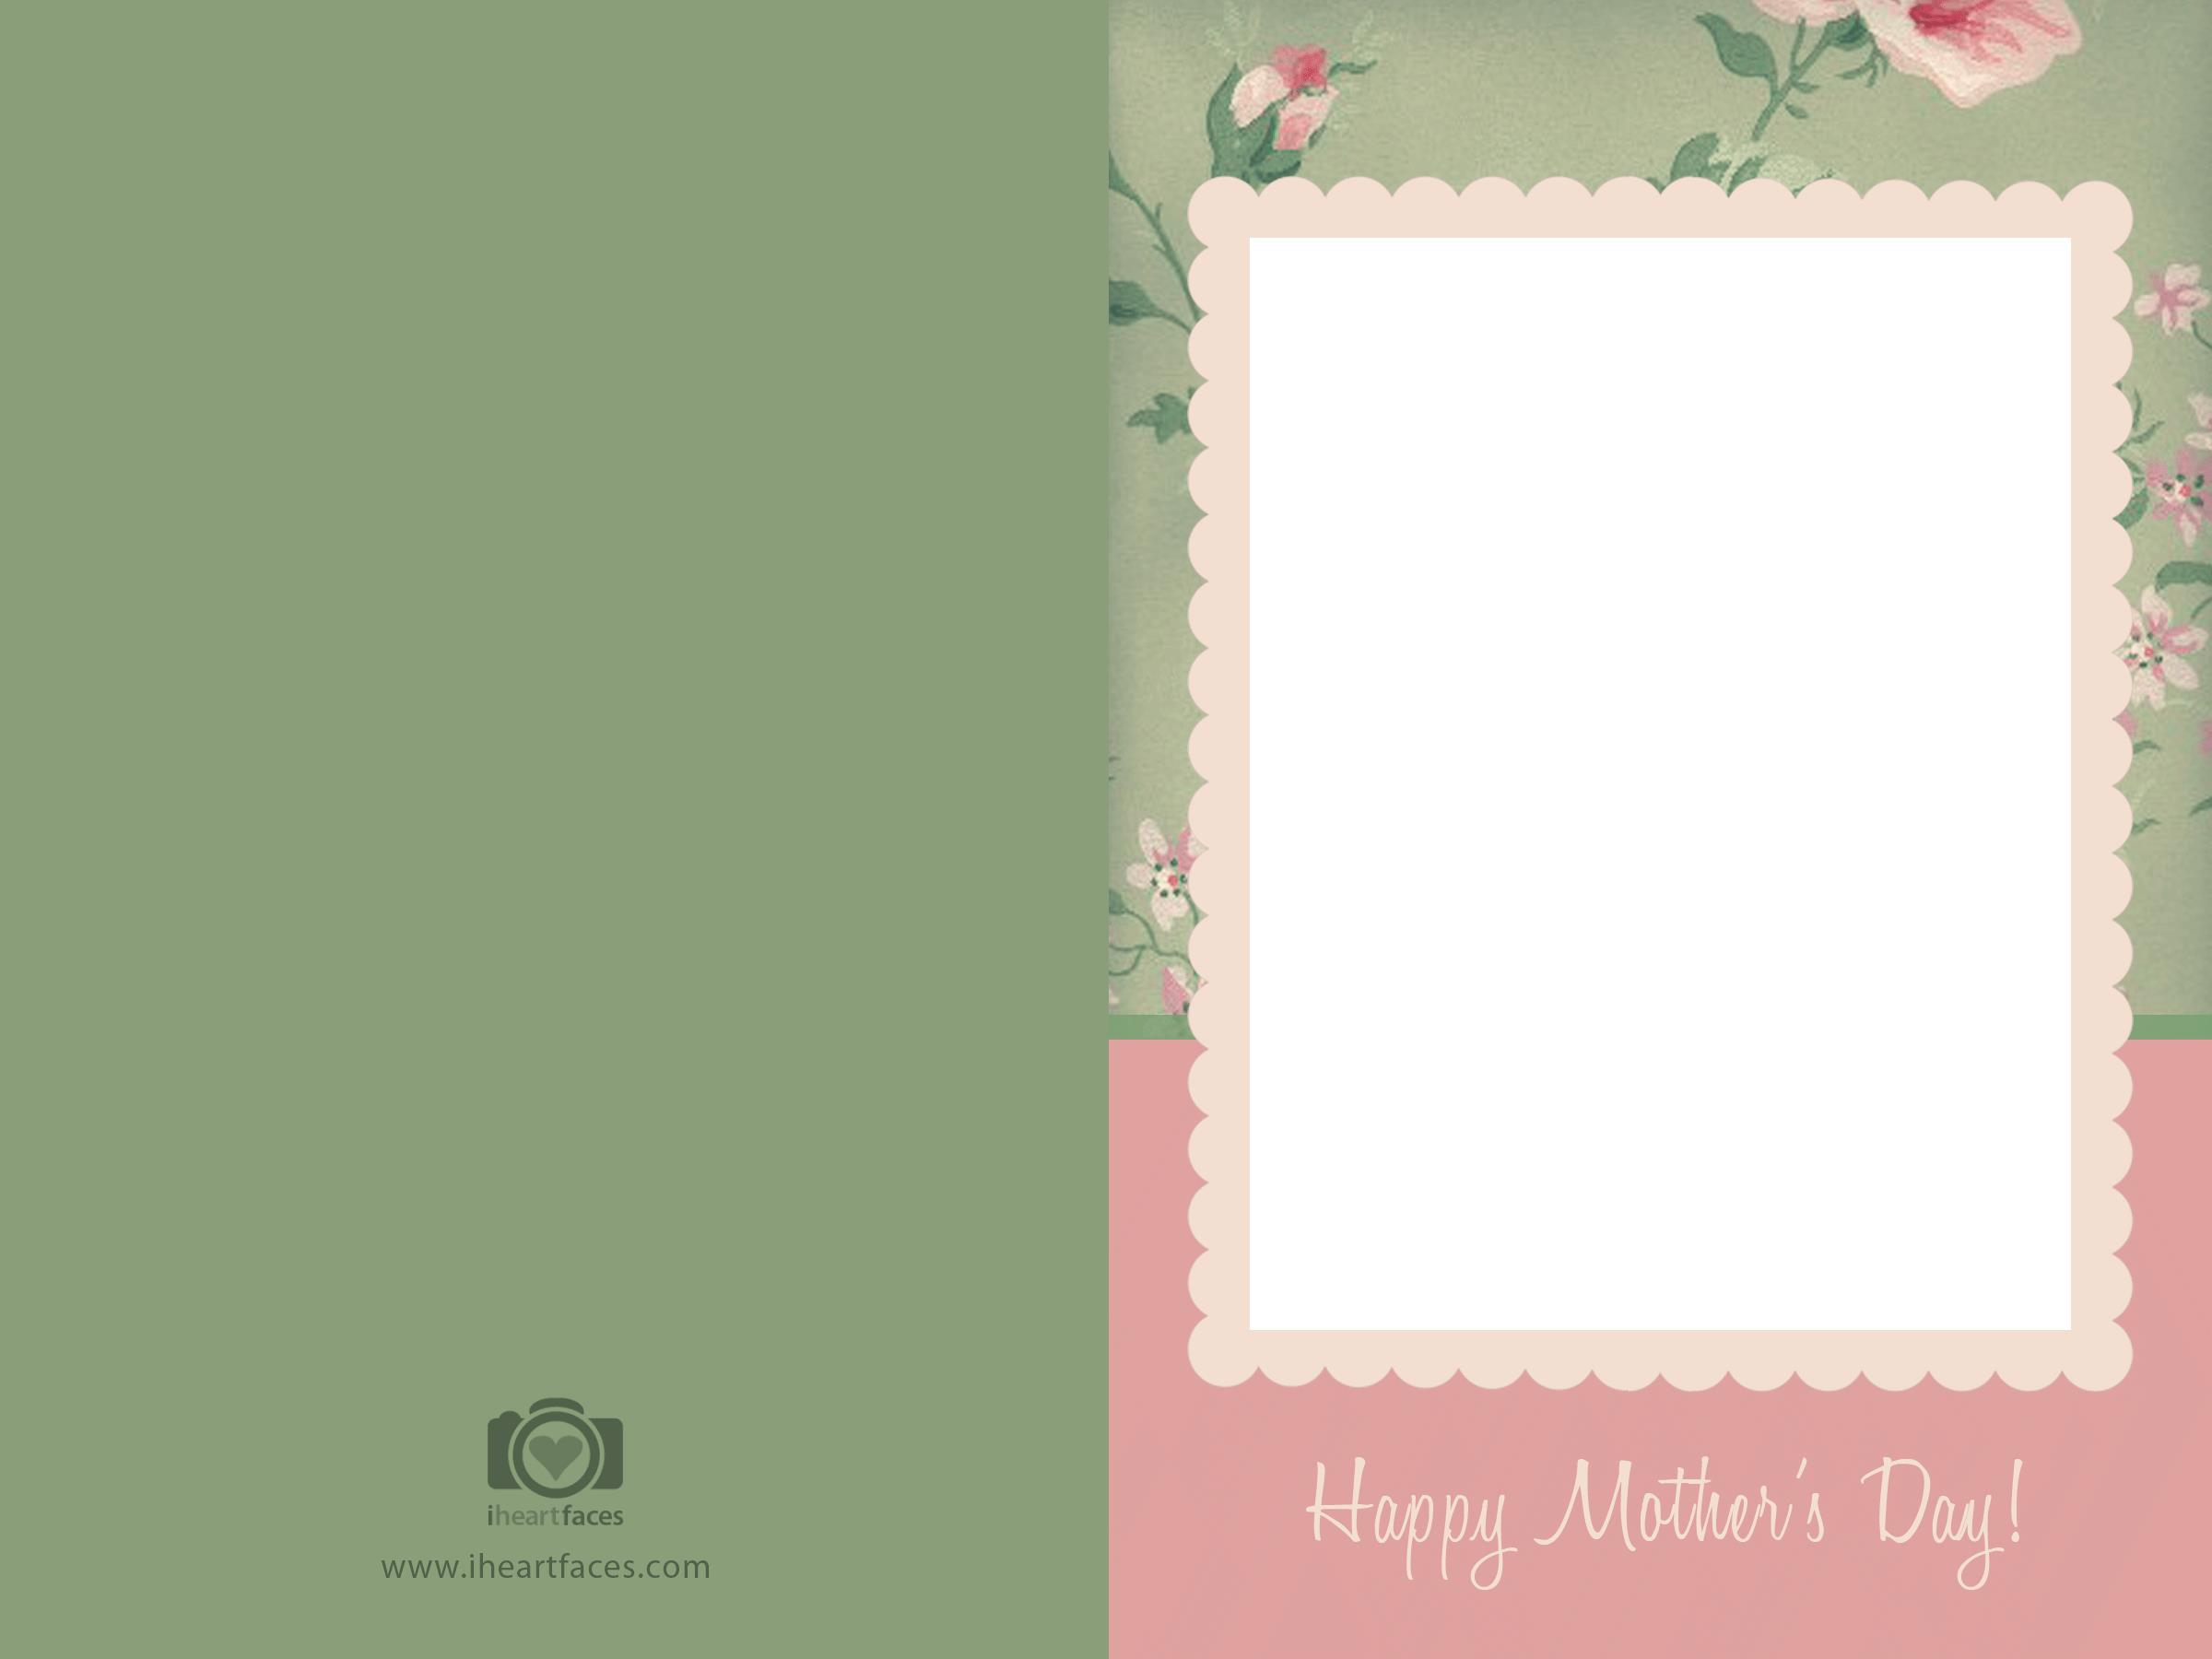 design a birthday card in photoshop ; Mom-Birthday-Card-Template-for-a-glamorous-birthday-Card-design-with-glamorous-layout-9